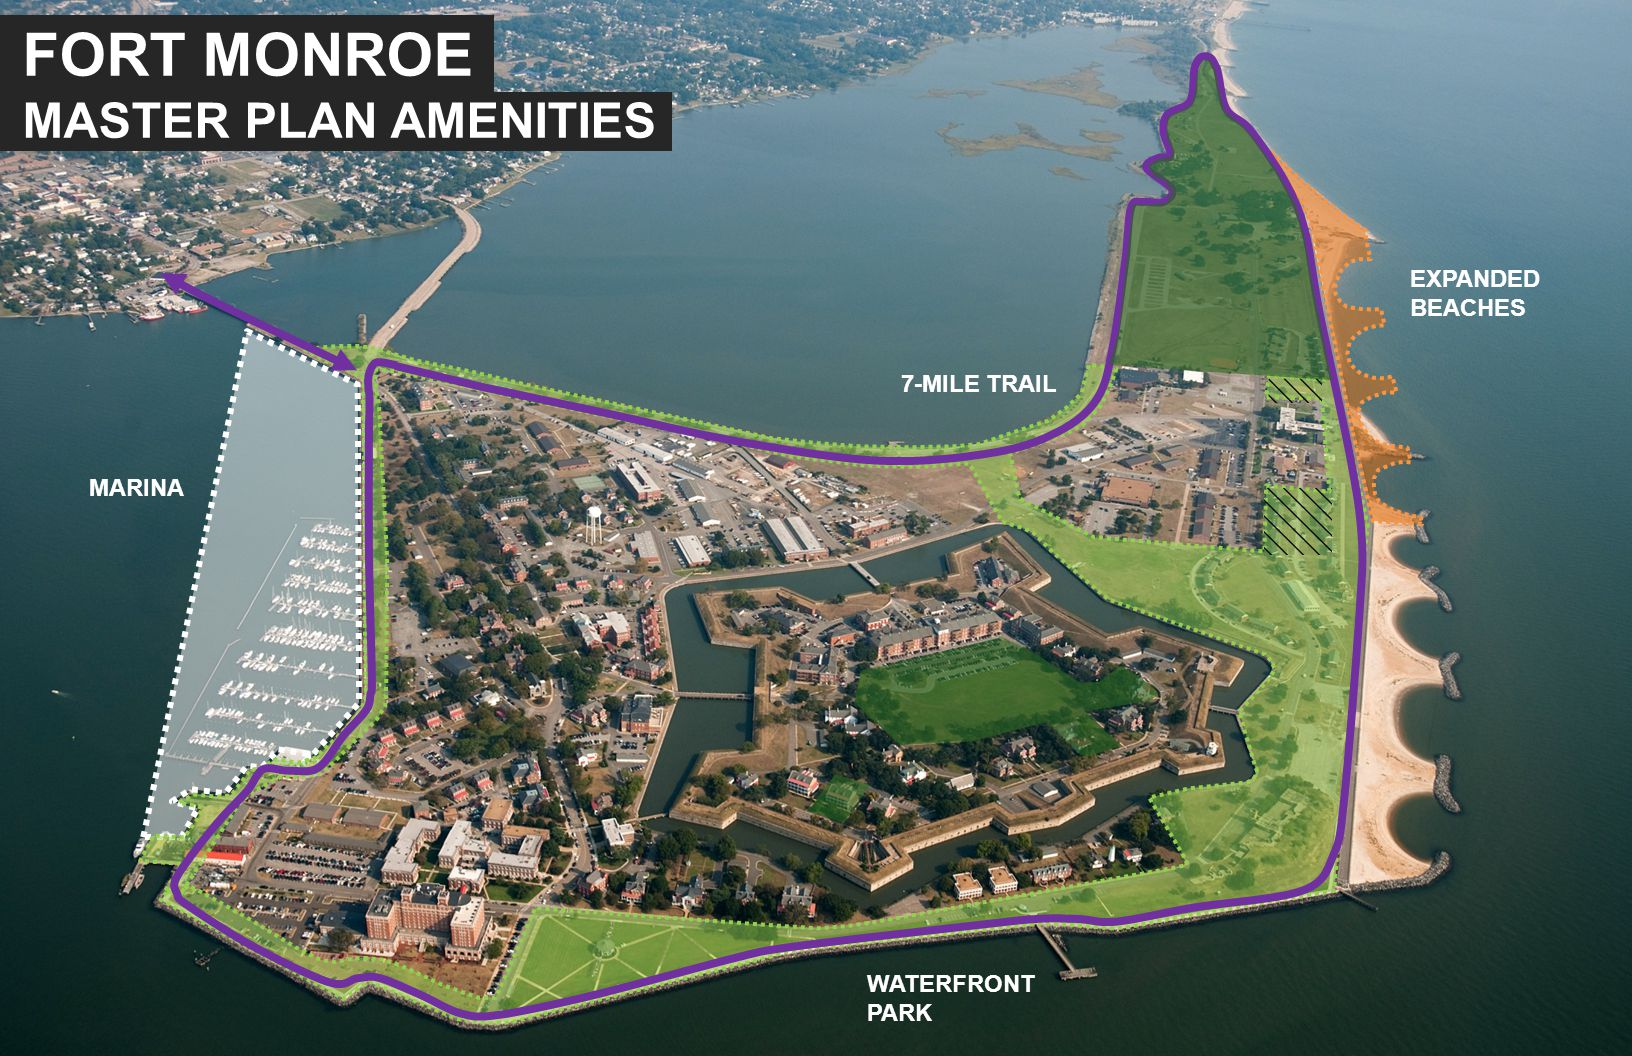 MARINA WATERFRONT PARK EXPANDED BEACHES 7-MILE TRAIL FORT MONROE MASTER PLAN AMENITIES